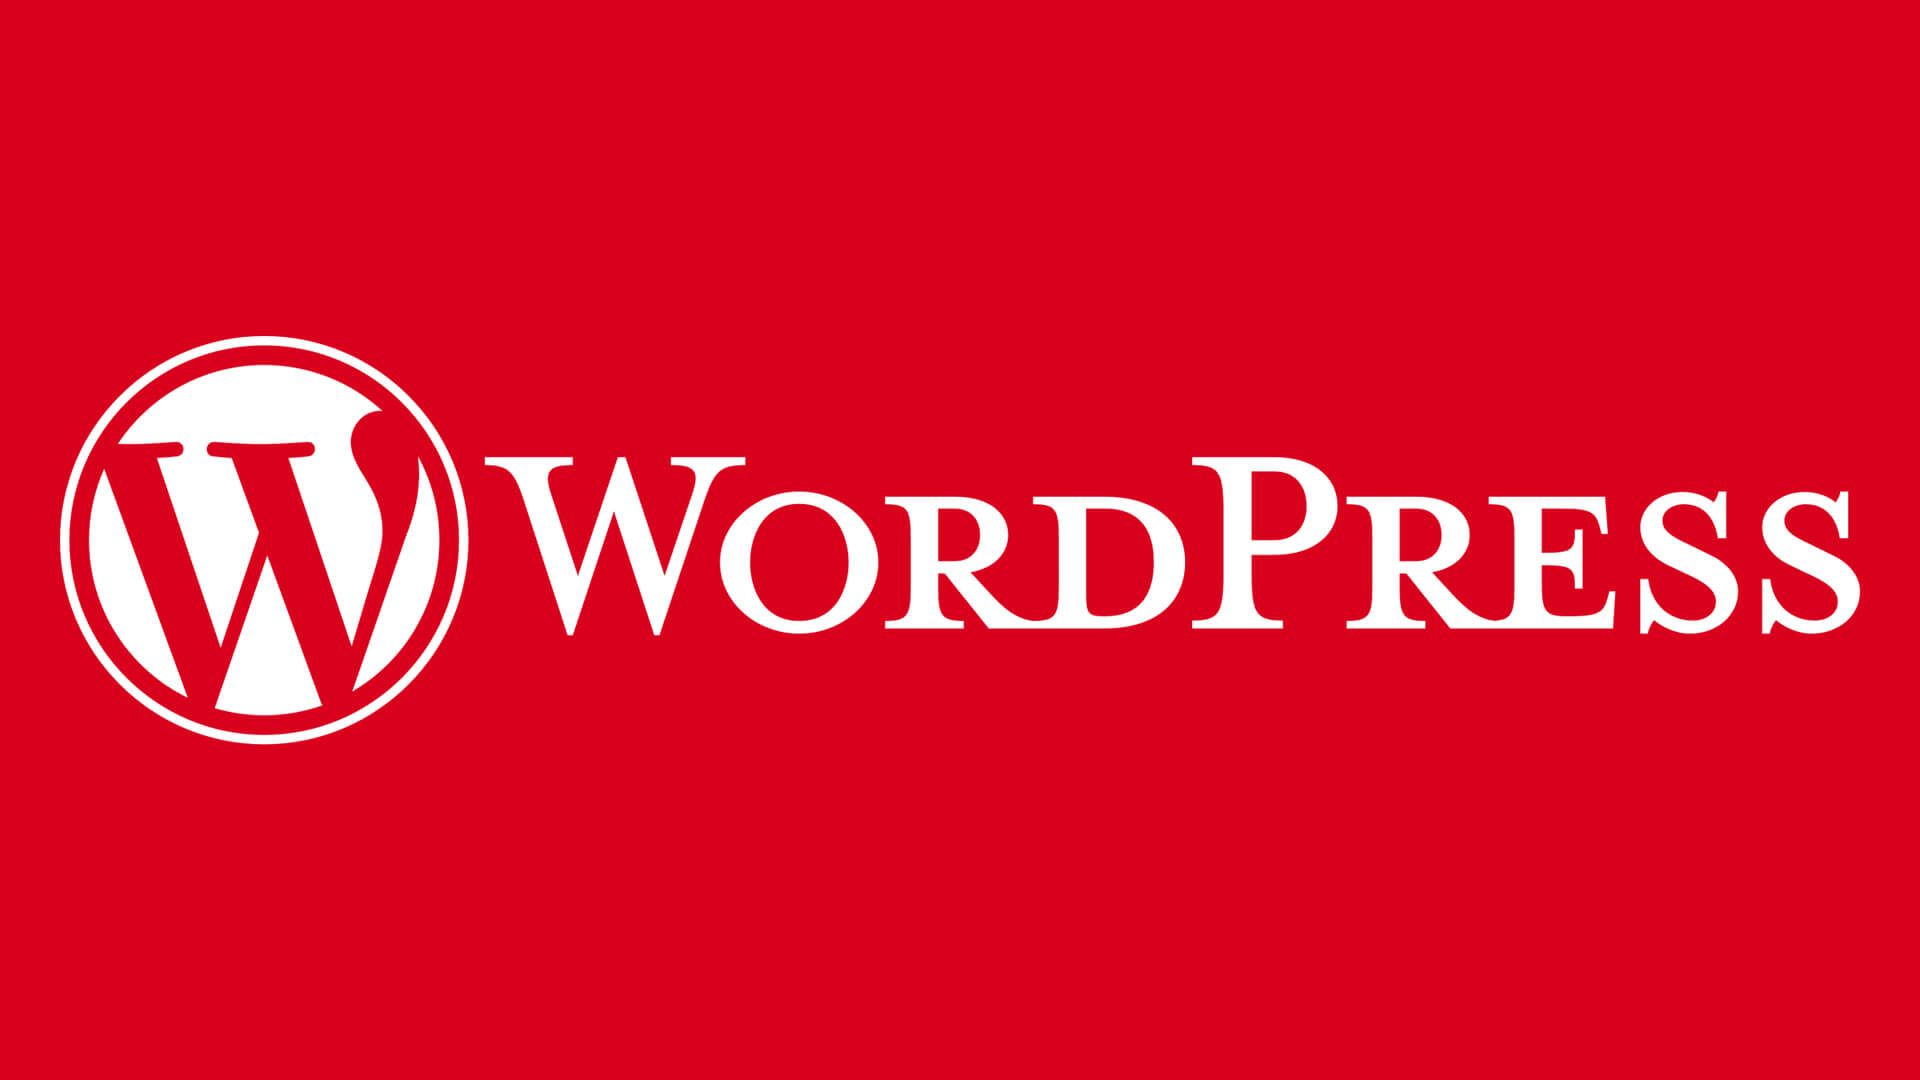 WordPress - Blog